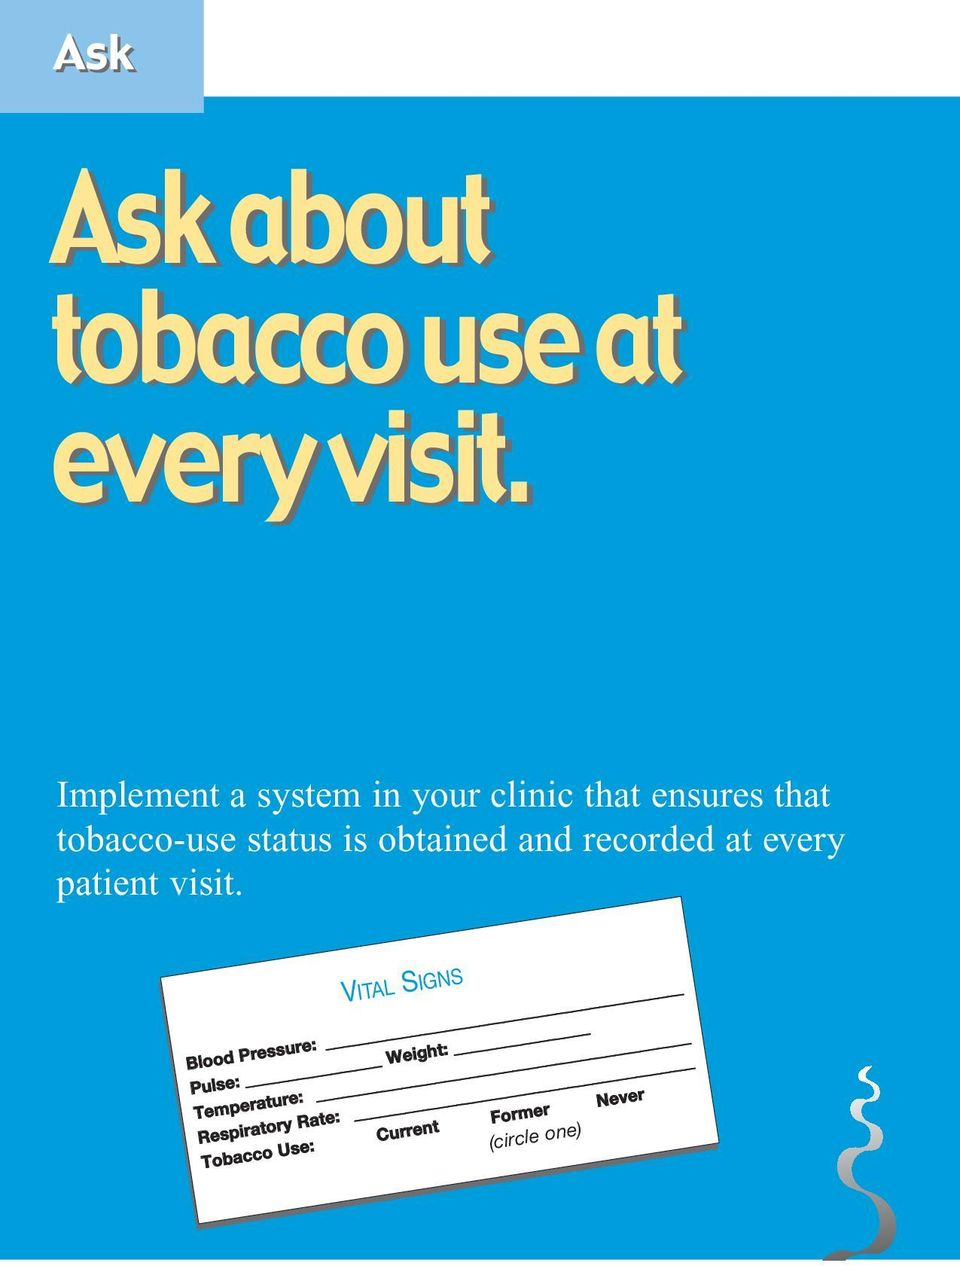 is obtained and recorded at every patient visit.